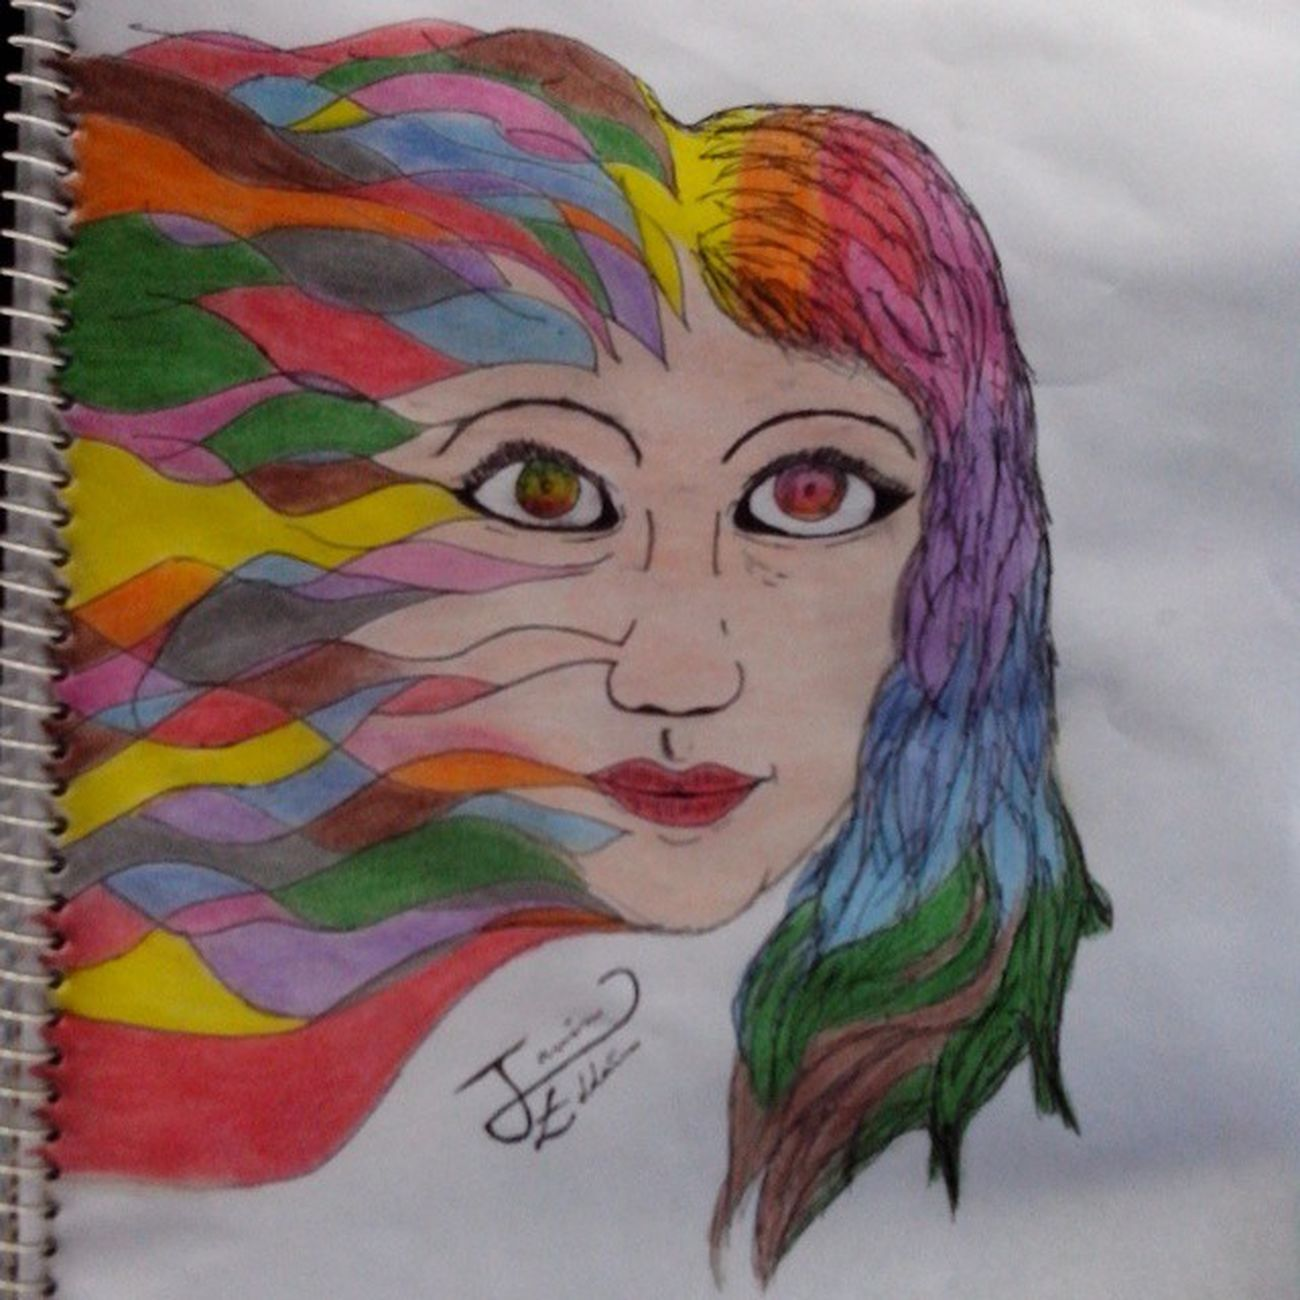 Girl Art. Art Draw Sketch Intaart Colors Abstract Dibujo Colores Chica